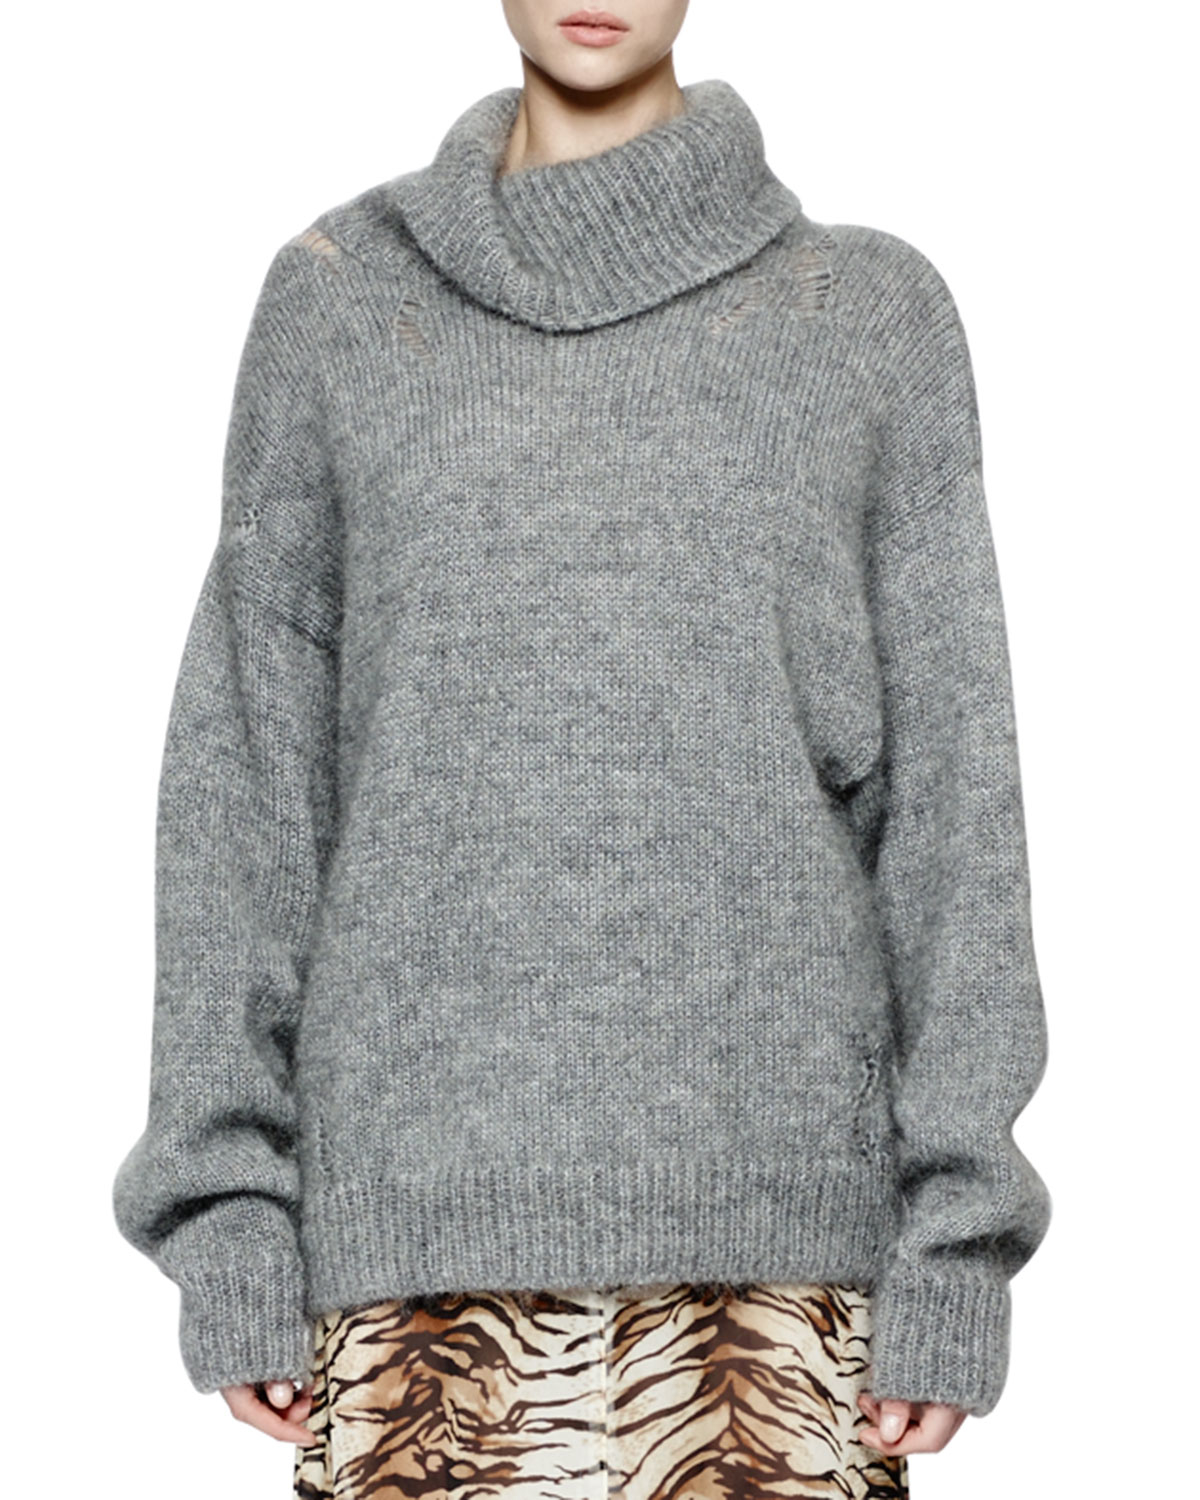 Saint laurent Oversized Knit Turtleneck Sweater in Gray | Lyst